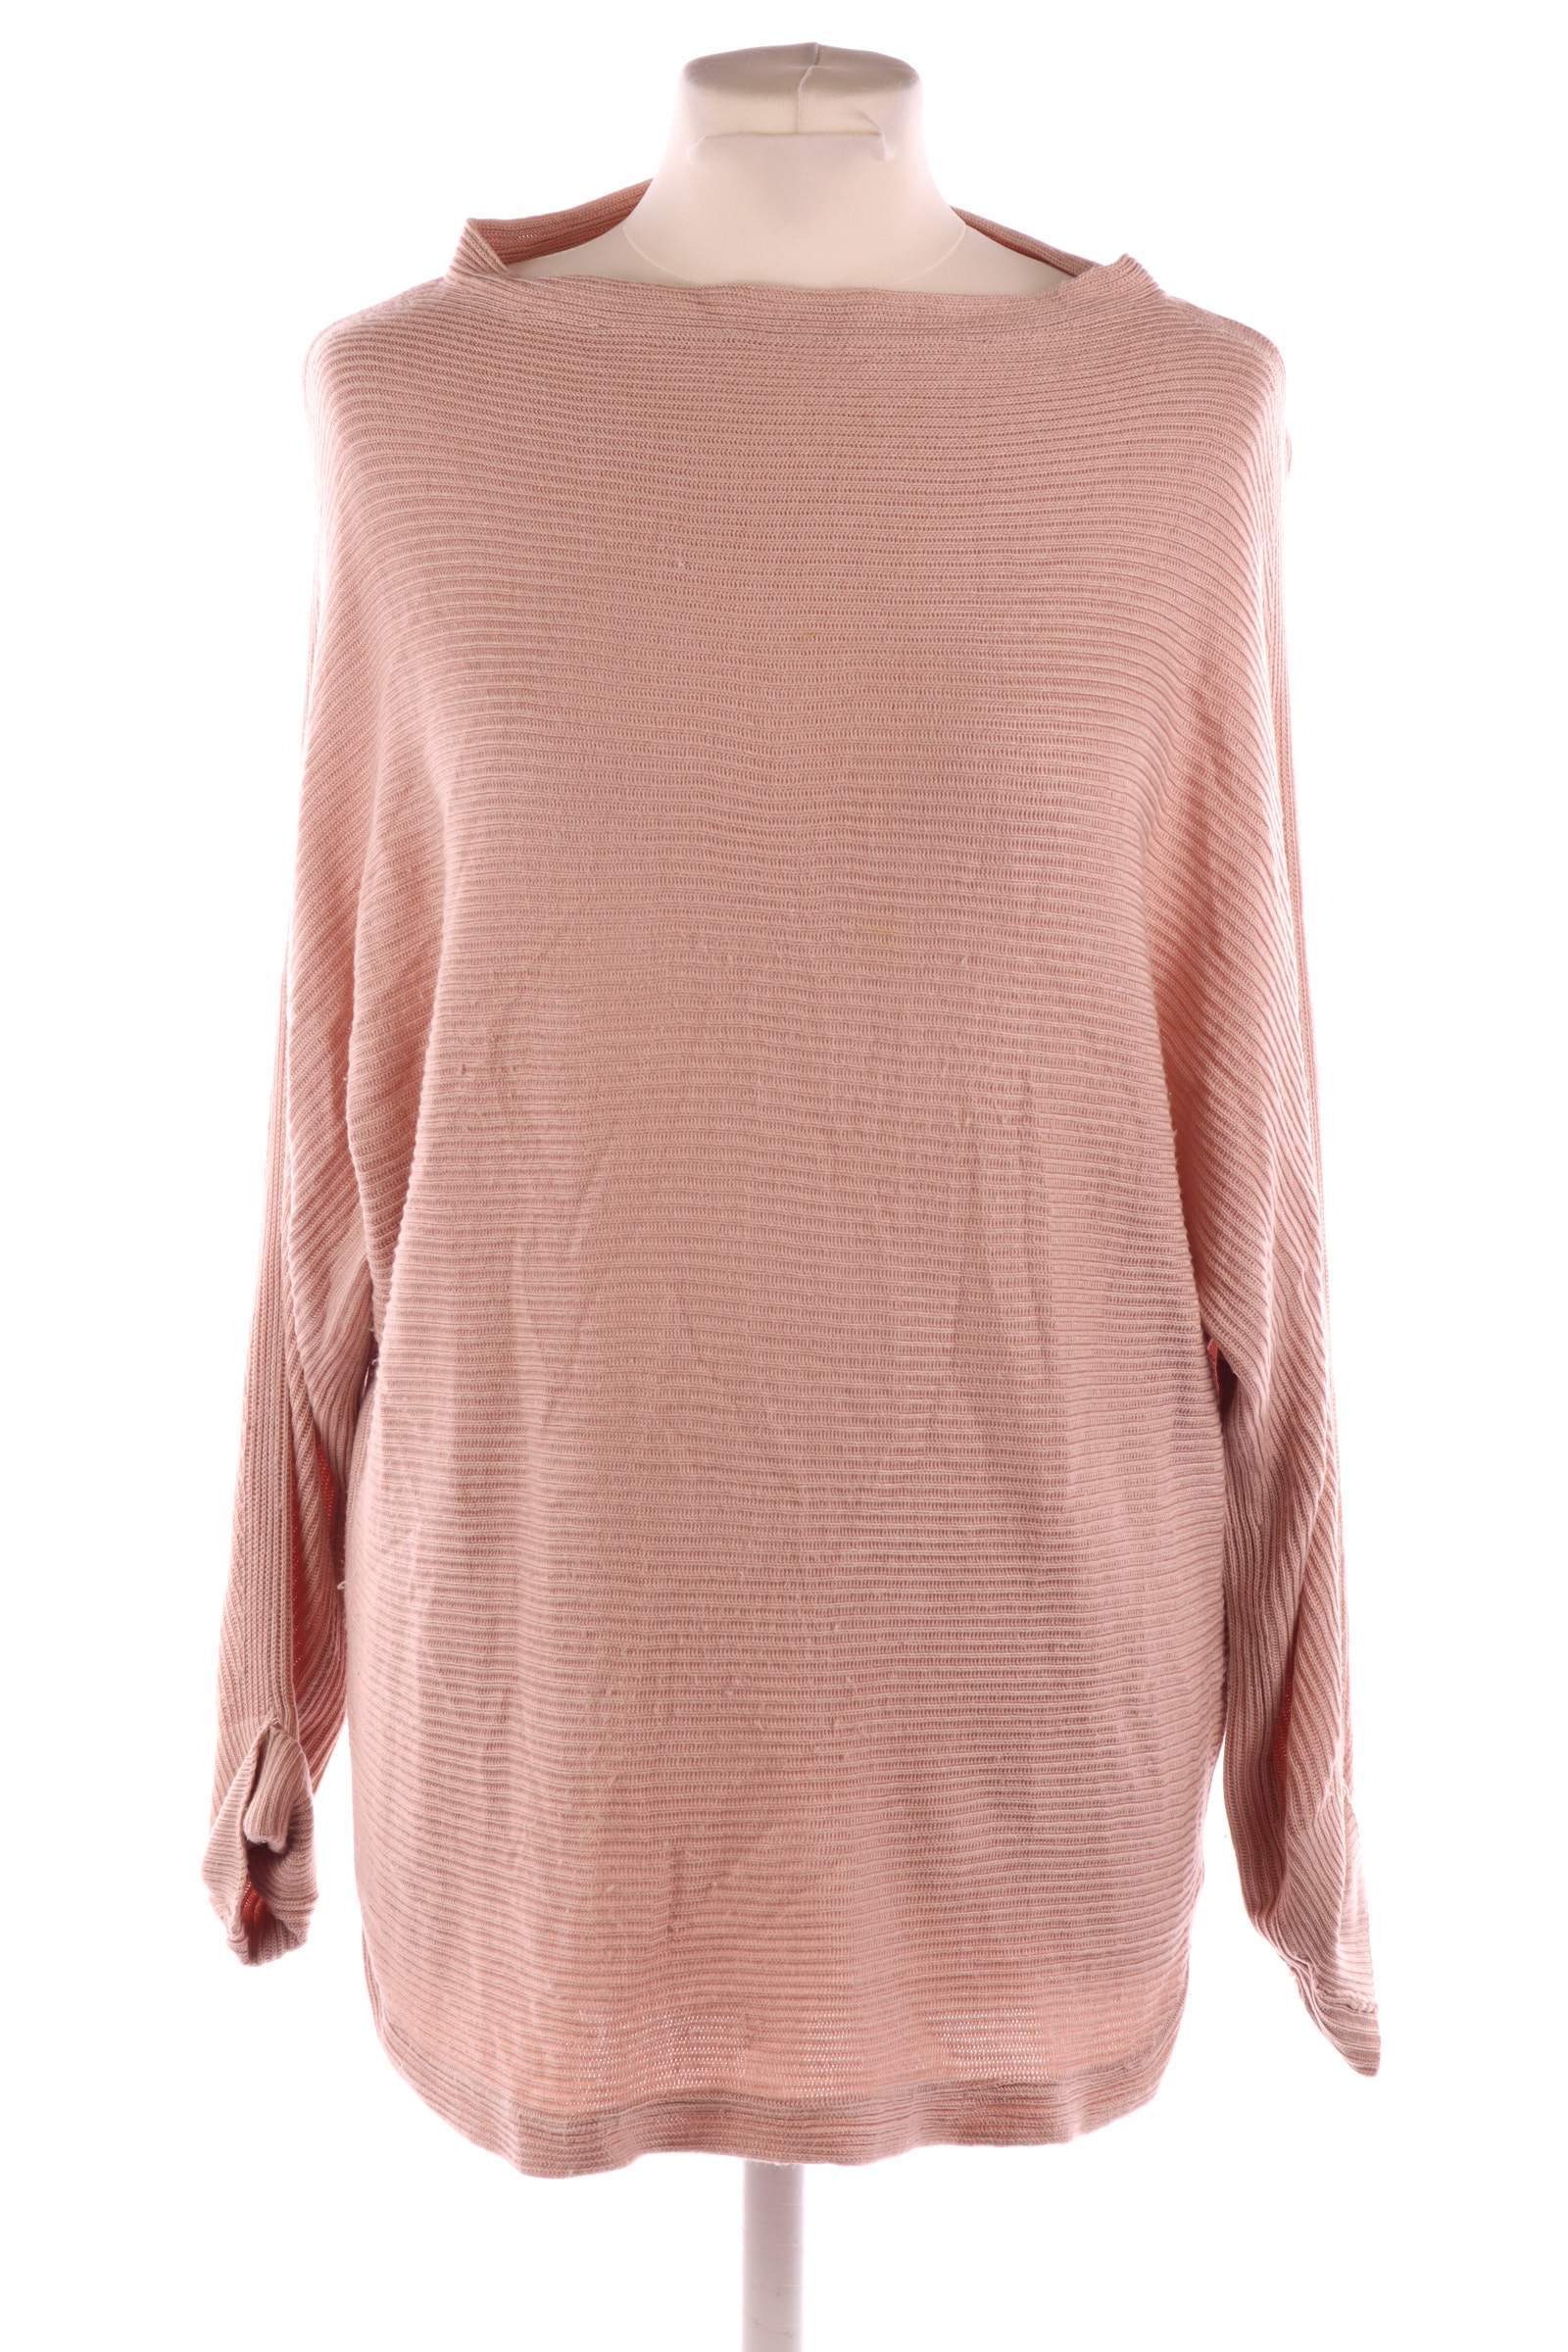 H&M Beige Sweater - upty.store